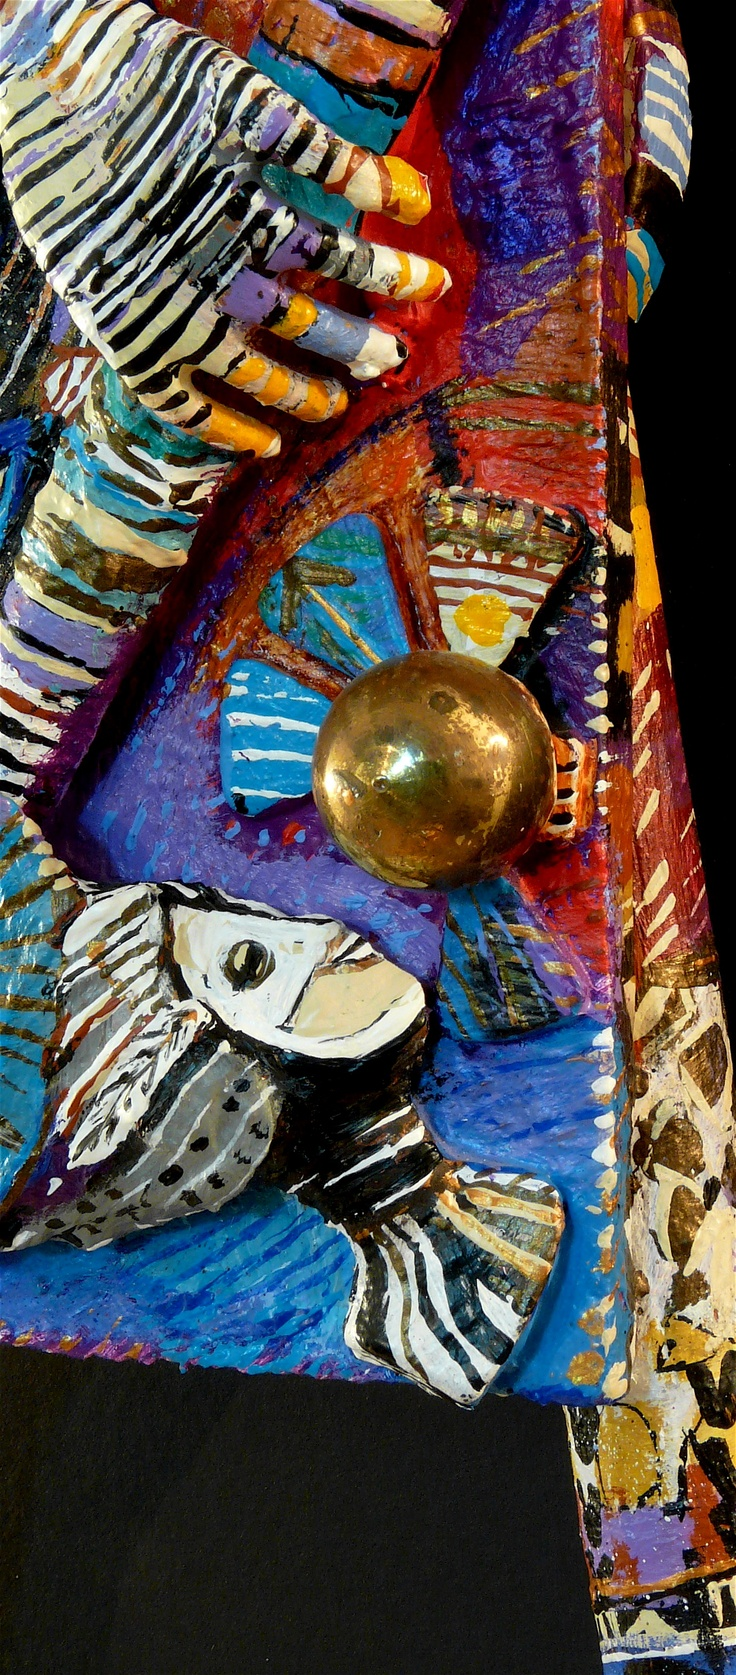 """Photographic Detail View: Nefertiti's 48th Reincarnation > For Sale: Title: Nefertiti`s Accordion-Peacock Persona. La personnalité accordéon-paon de Nefertiti. (DETAIL View of Acrylic Painted, Wall Assemblage FIGURE). Iconography: (Buffoonish) Circus Animal Figure with Peacock, Owl, Cat, Paint Brush…) Category: Nefertiti Series for Sale Artist's Collection © 2003-2005 Eve Damie. Size: 28 x 15 x 6""""/71 x 38 x 15CM. Archival, Museum + Professional Quality Materials and Techniques >"""